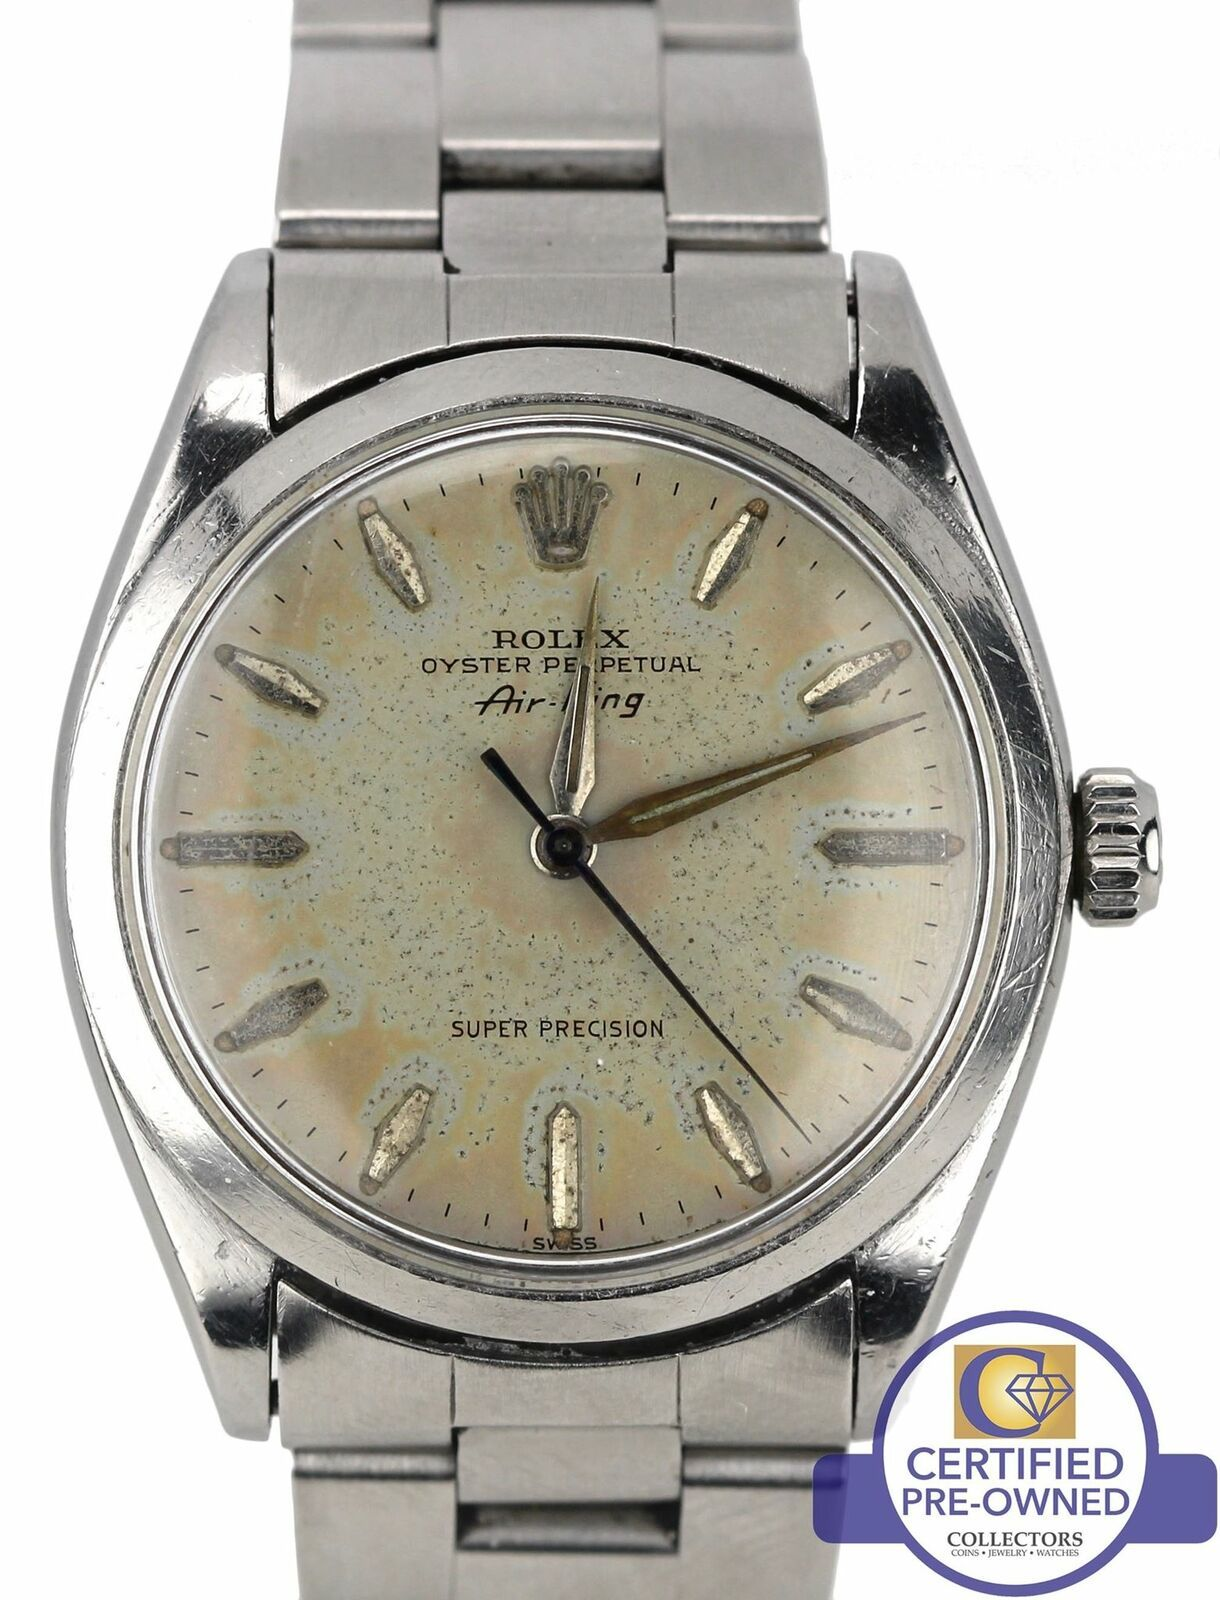 Rolex Oyster Perpetual AirKing Silver Patina Stainless